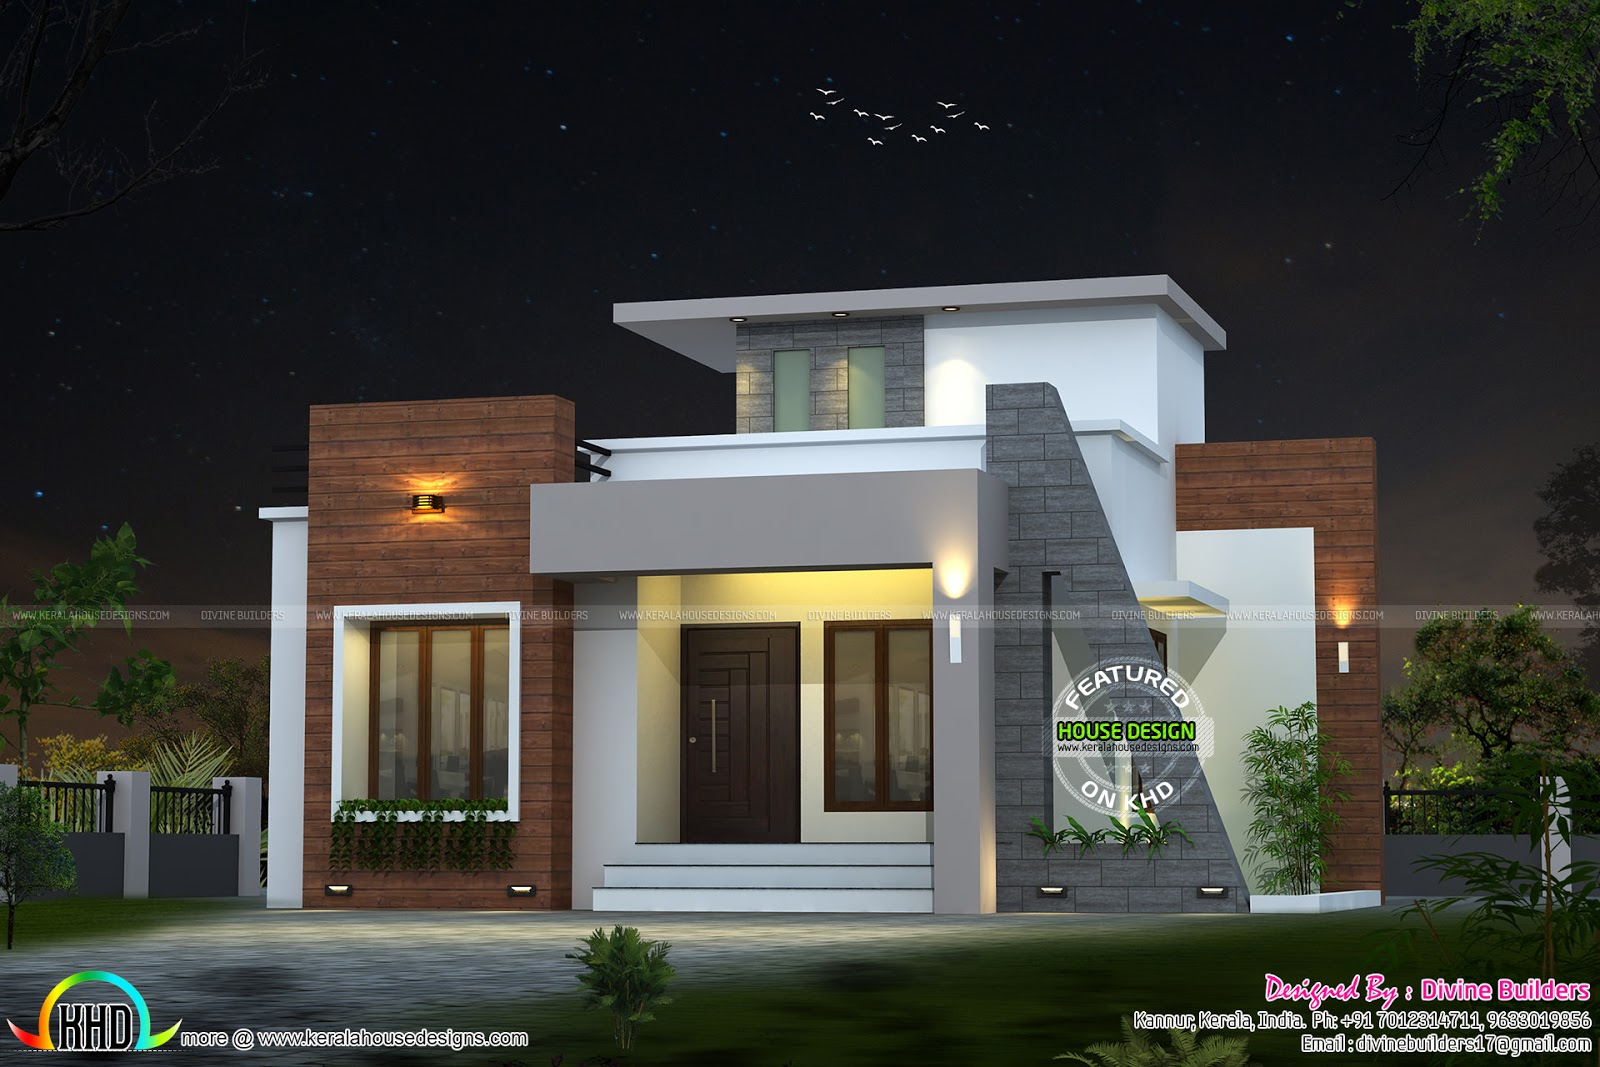 22 lakhs cost estimated house plan kerala home design for Low cost house plans with estimate